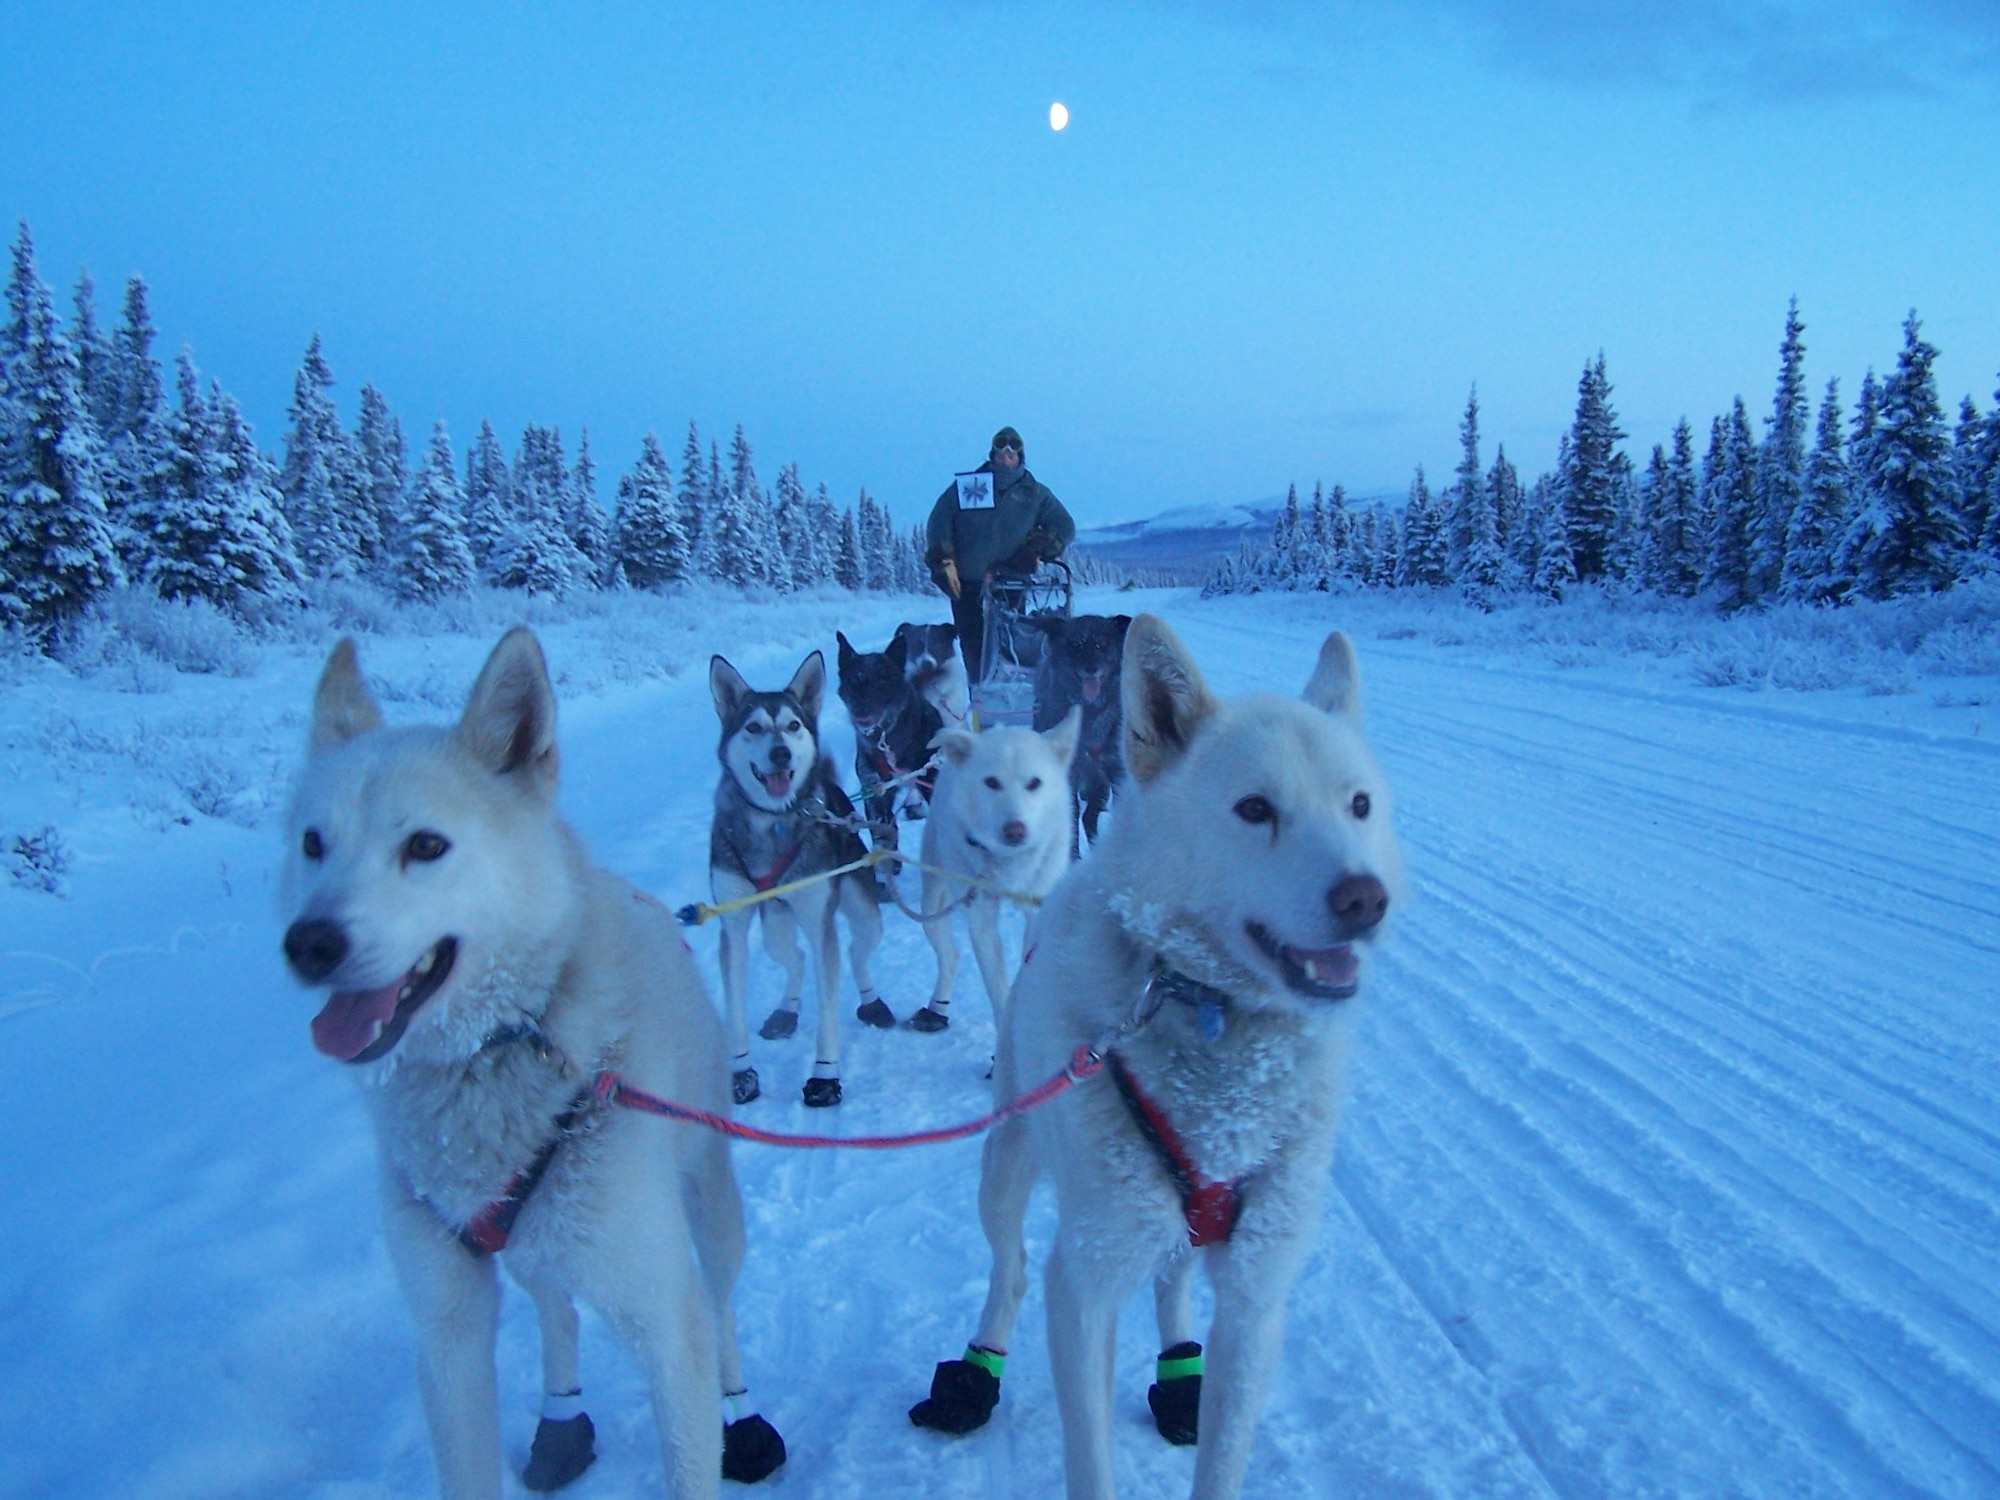 Maj. Roger Lee practices with his sled dogs for the Iditarod Trail Sled Dog Race in Alaska. Lee hopes to qualify for this year's race of more than 1,000 miles from Anchorage to Nome, Alaska.  Lee is a 60th Aerospace Medicine Squadron bioenvironmental engineering operations officer. (Courtesy photo)